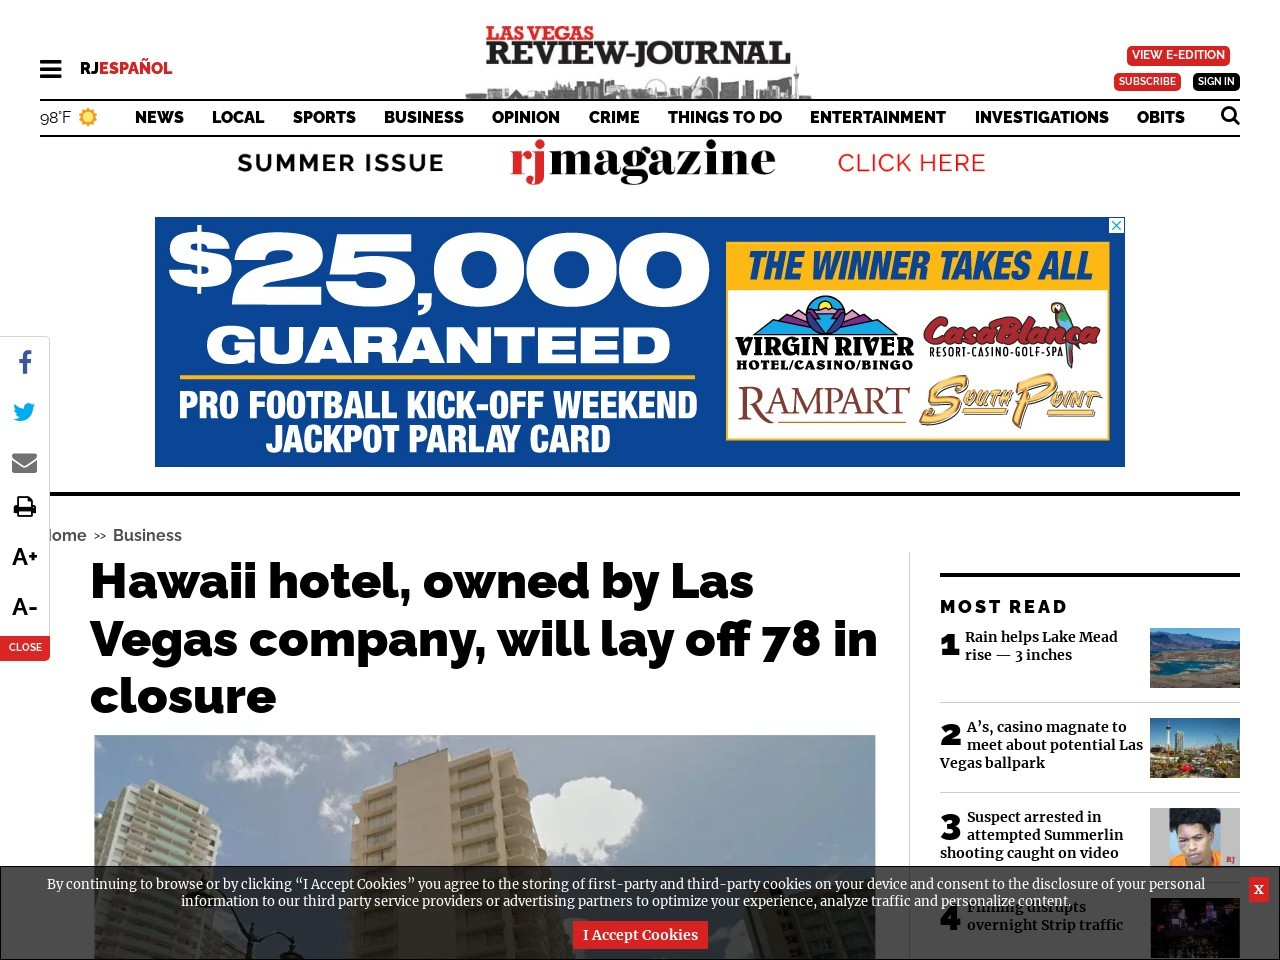 Hawaii hotel, owned by Las Vegas company, will lay off 78 in closure